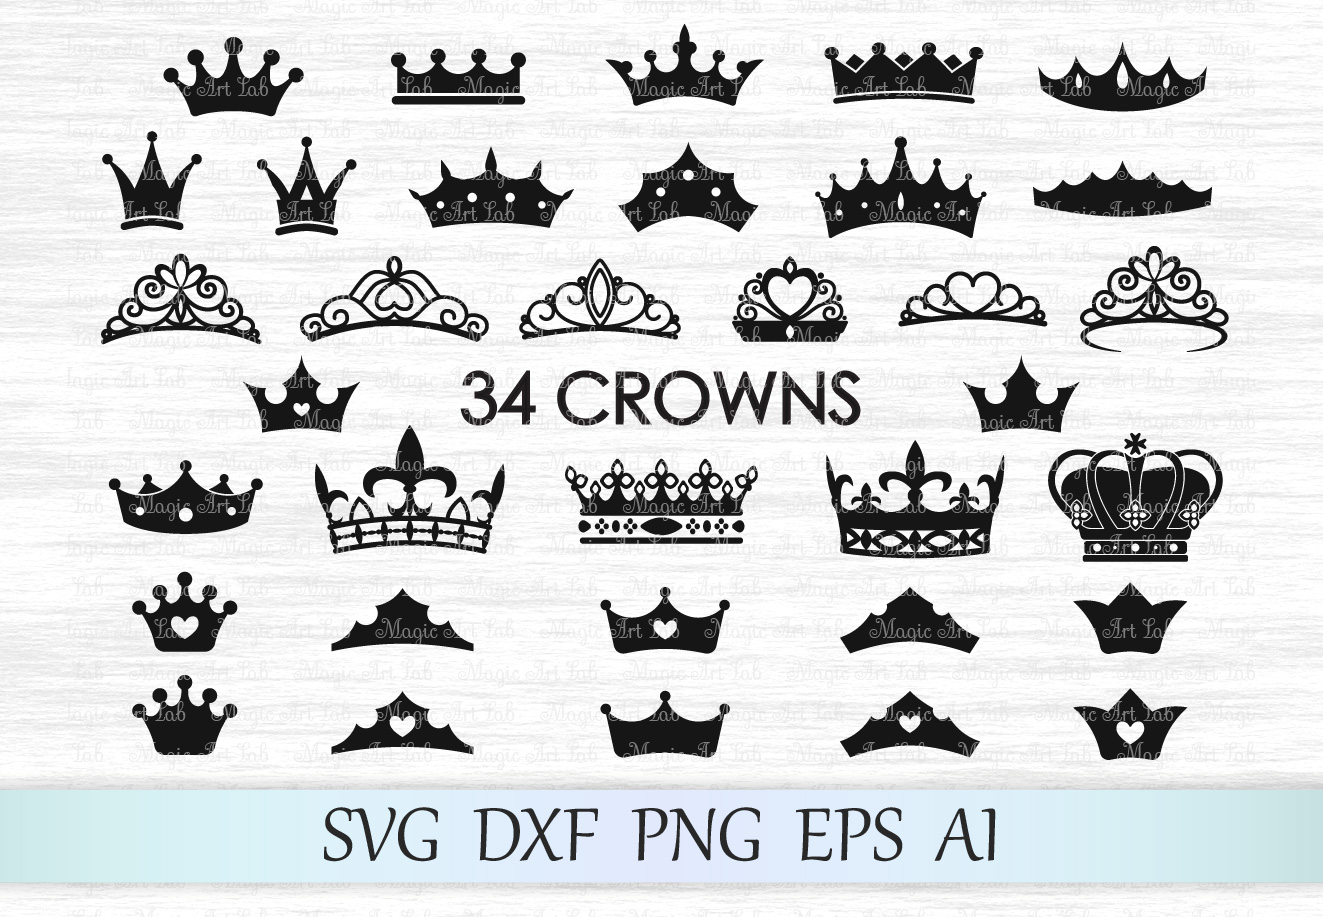 Crown svg, Crown svg file, Crowns svg, Tiara svg, Crown cut file, Princess crown svg, King crown svg, Crown clipart, Queen crown example image 1